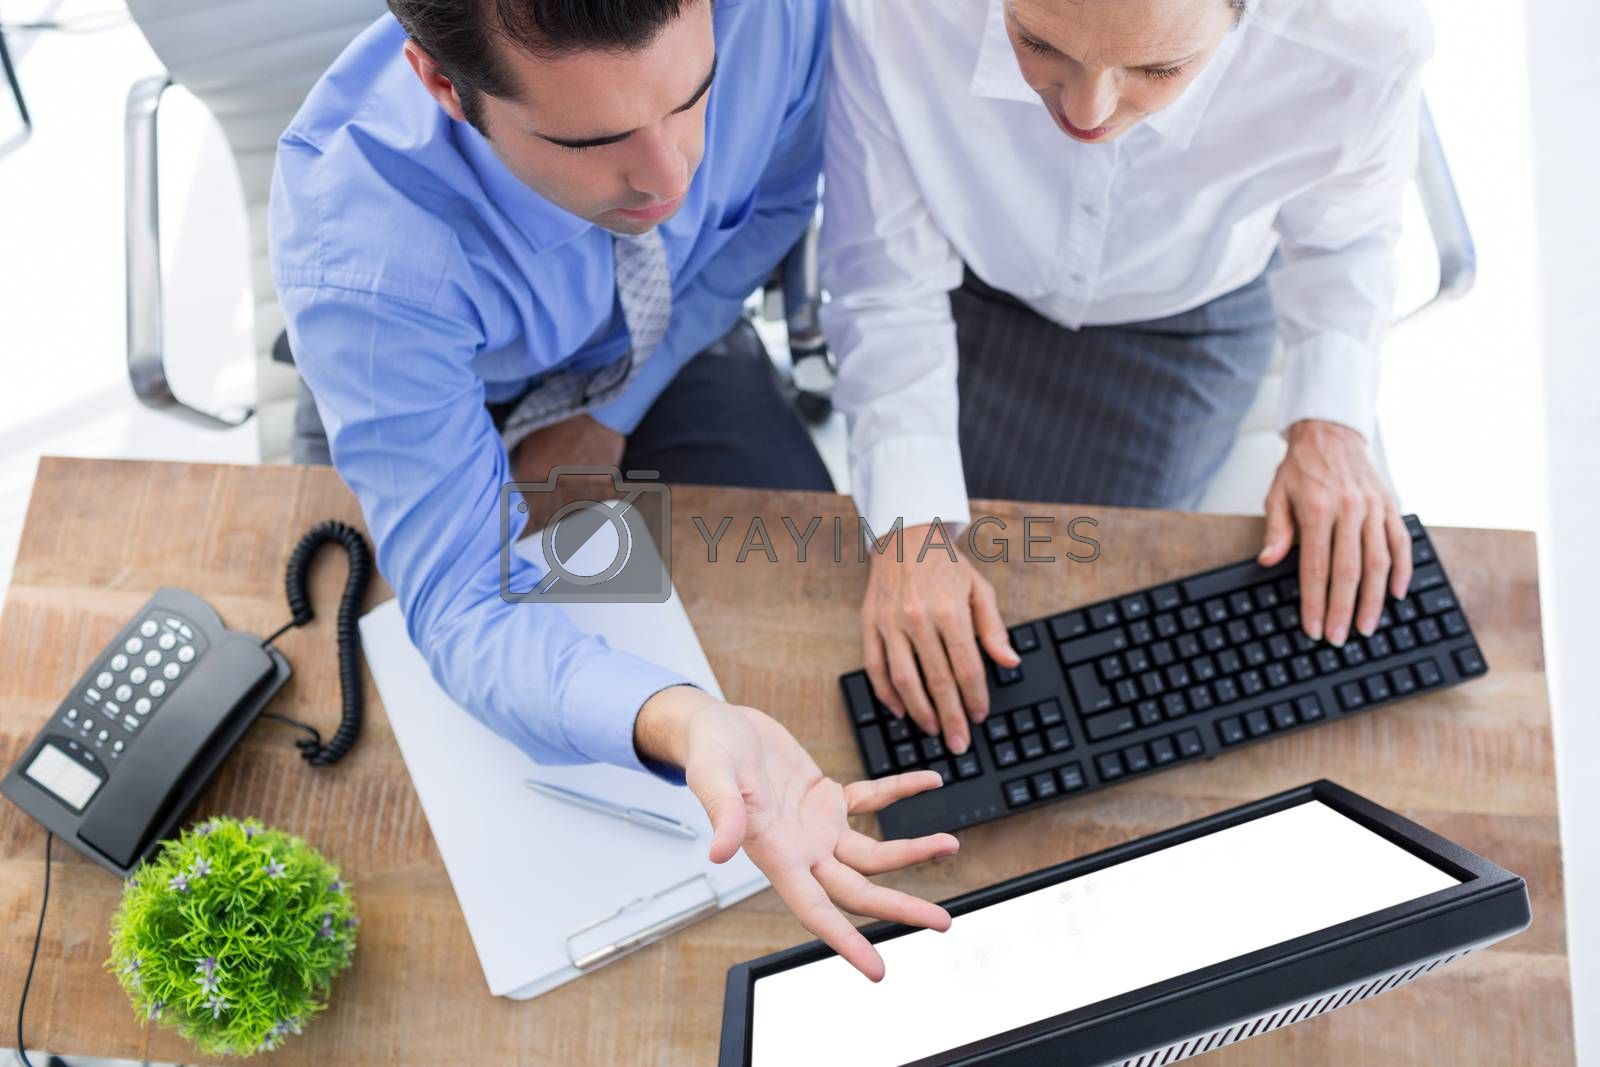 Royalty free image of Coworker working with a laptop by Wavebreakmedia